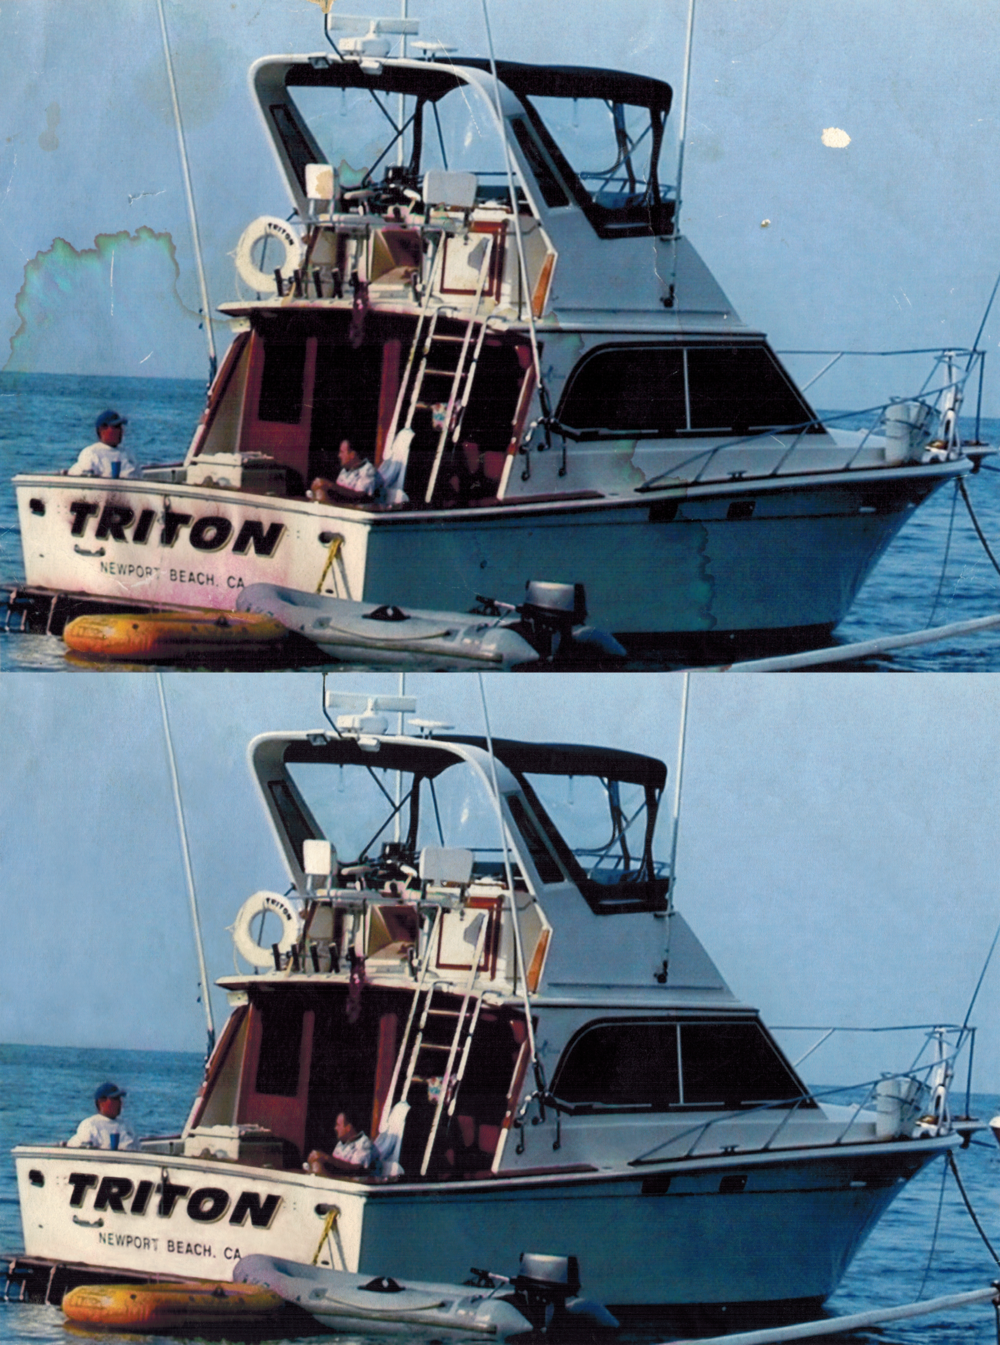 Water-damaged photo (top), digitally restored photo (bottom).